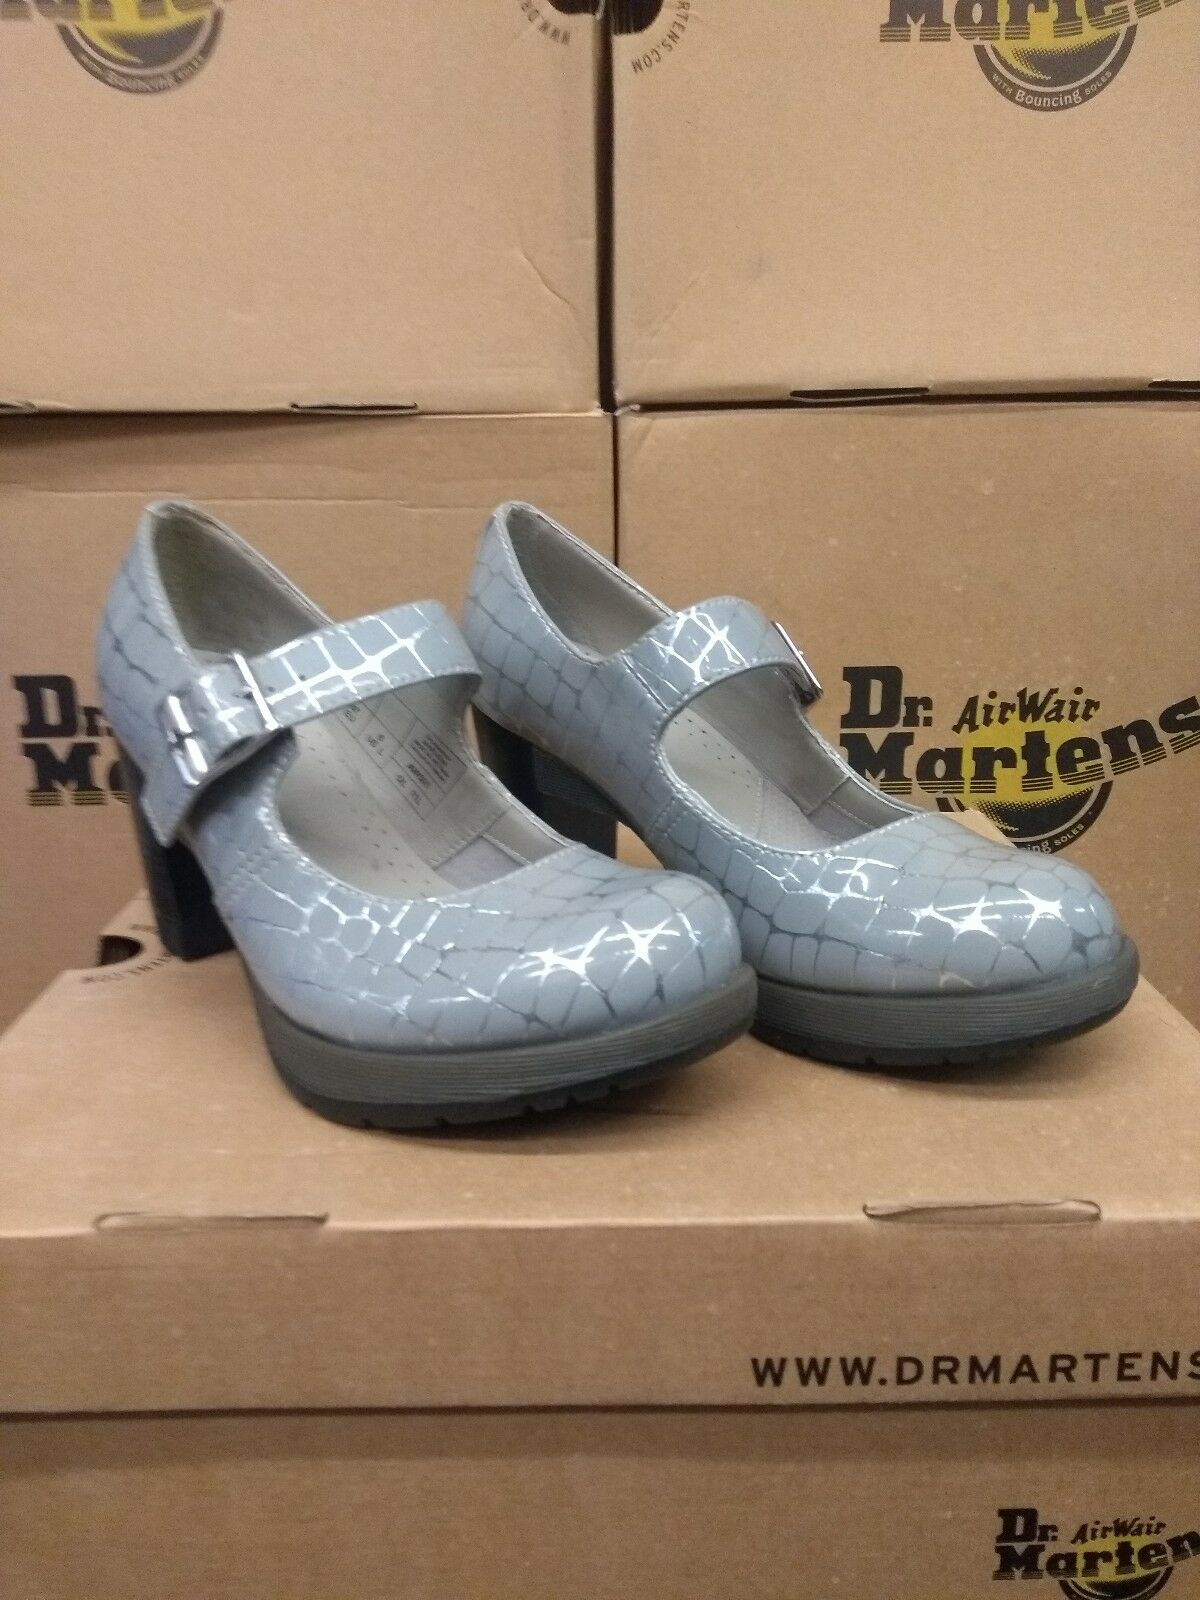 DR MARTENS LADIES MARLENA HEELED SHOE GREY AND SILVER SIZE 3